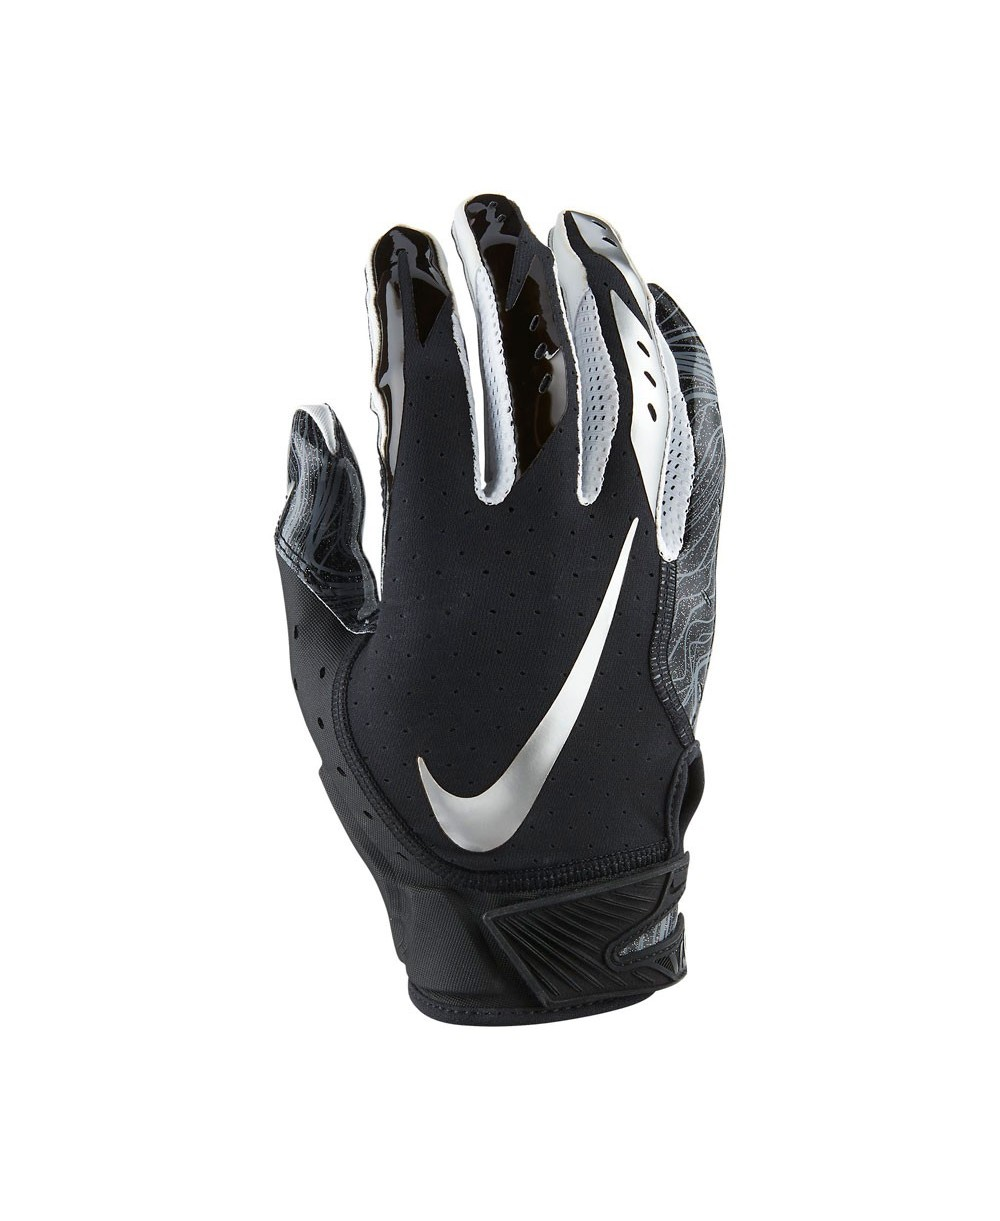 Nike Vapor Jet 5 Men s American Football Gloves Black 052e886bf